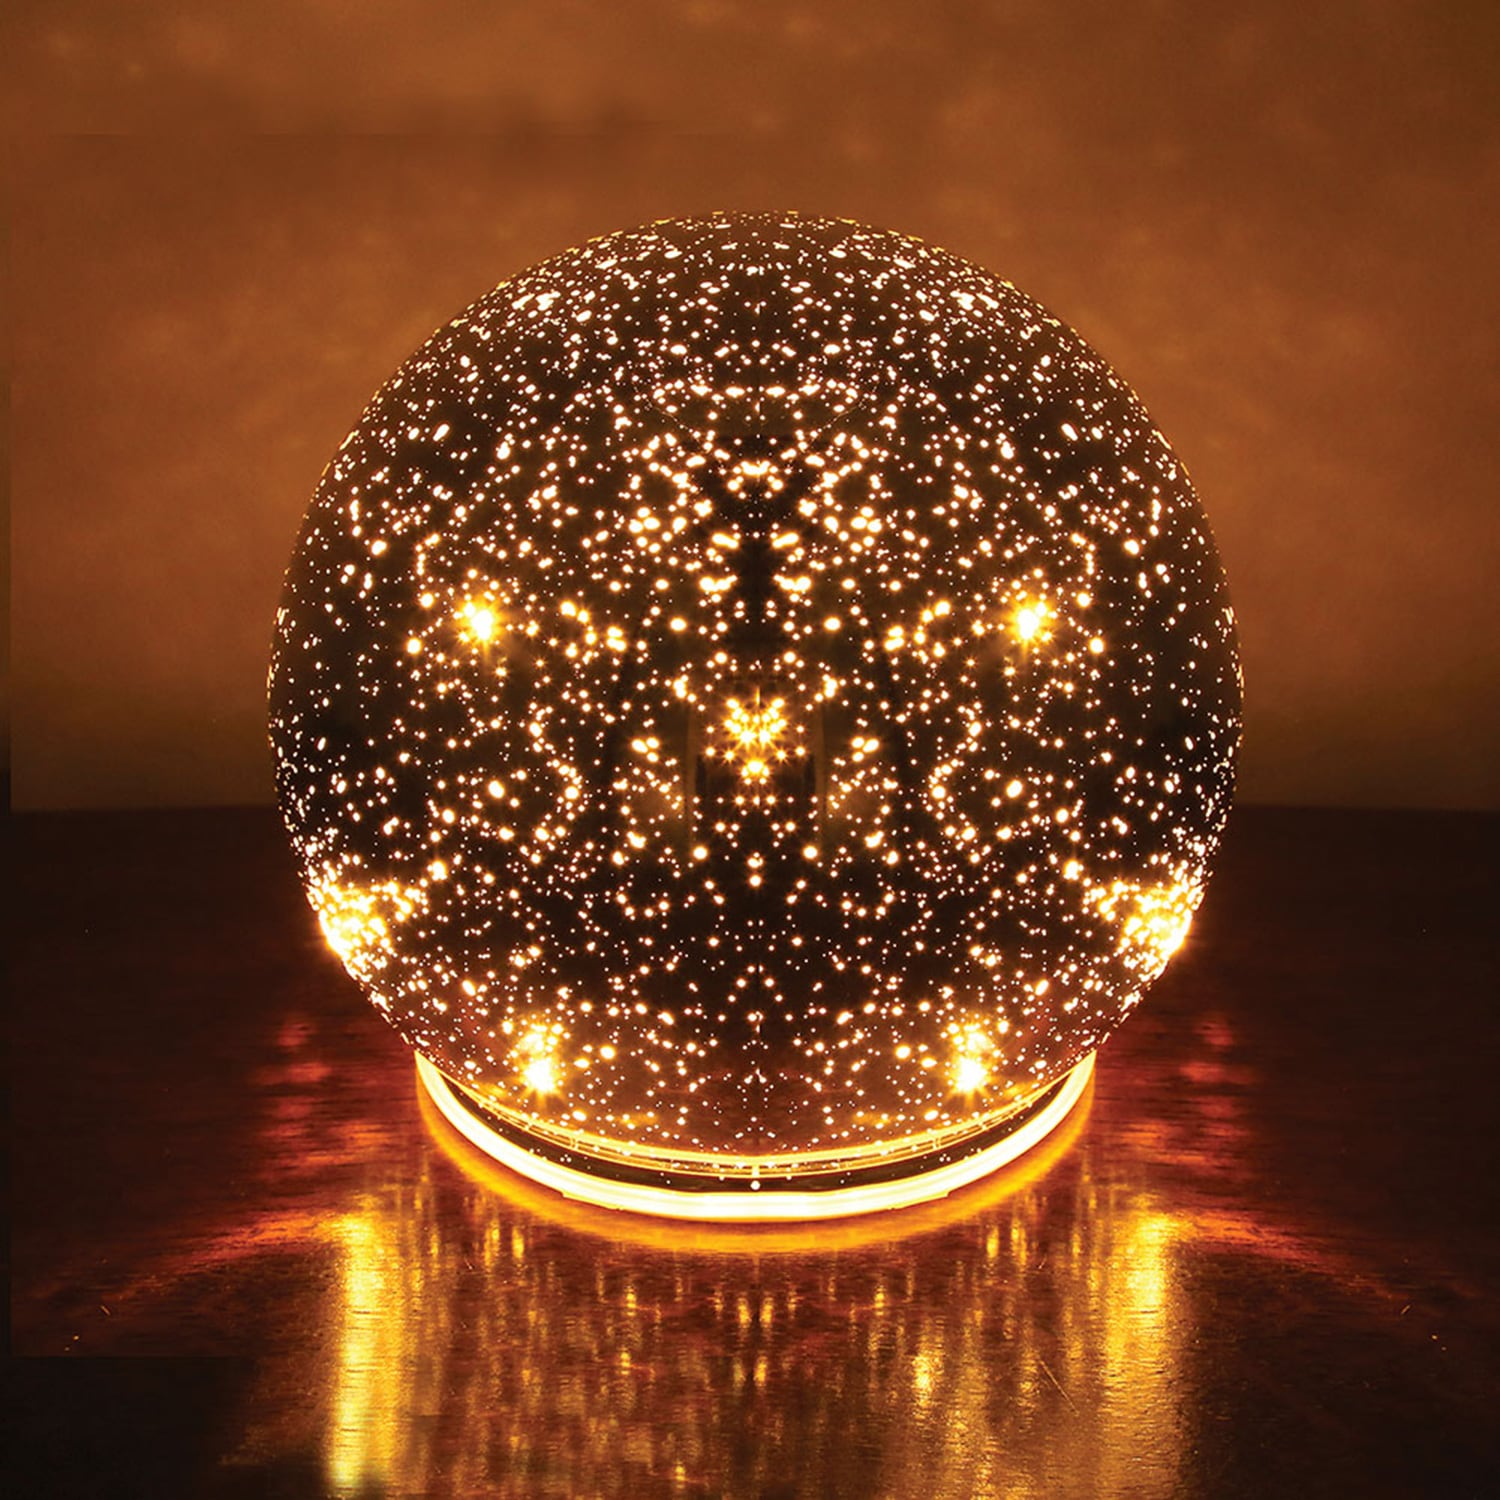 SIGNALS Lighted Mercury Glass Ball Sphere Holiday Home Decor Nightlight Accent Light Large Silver